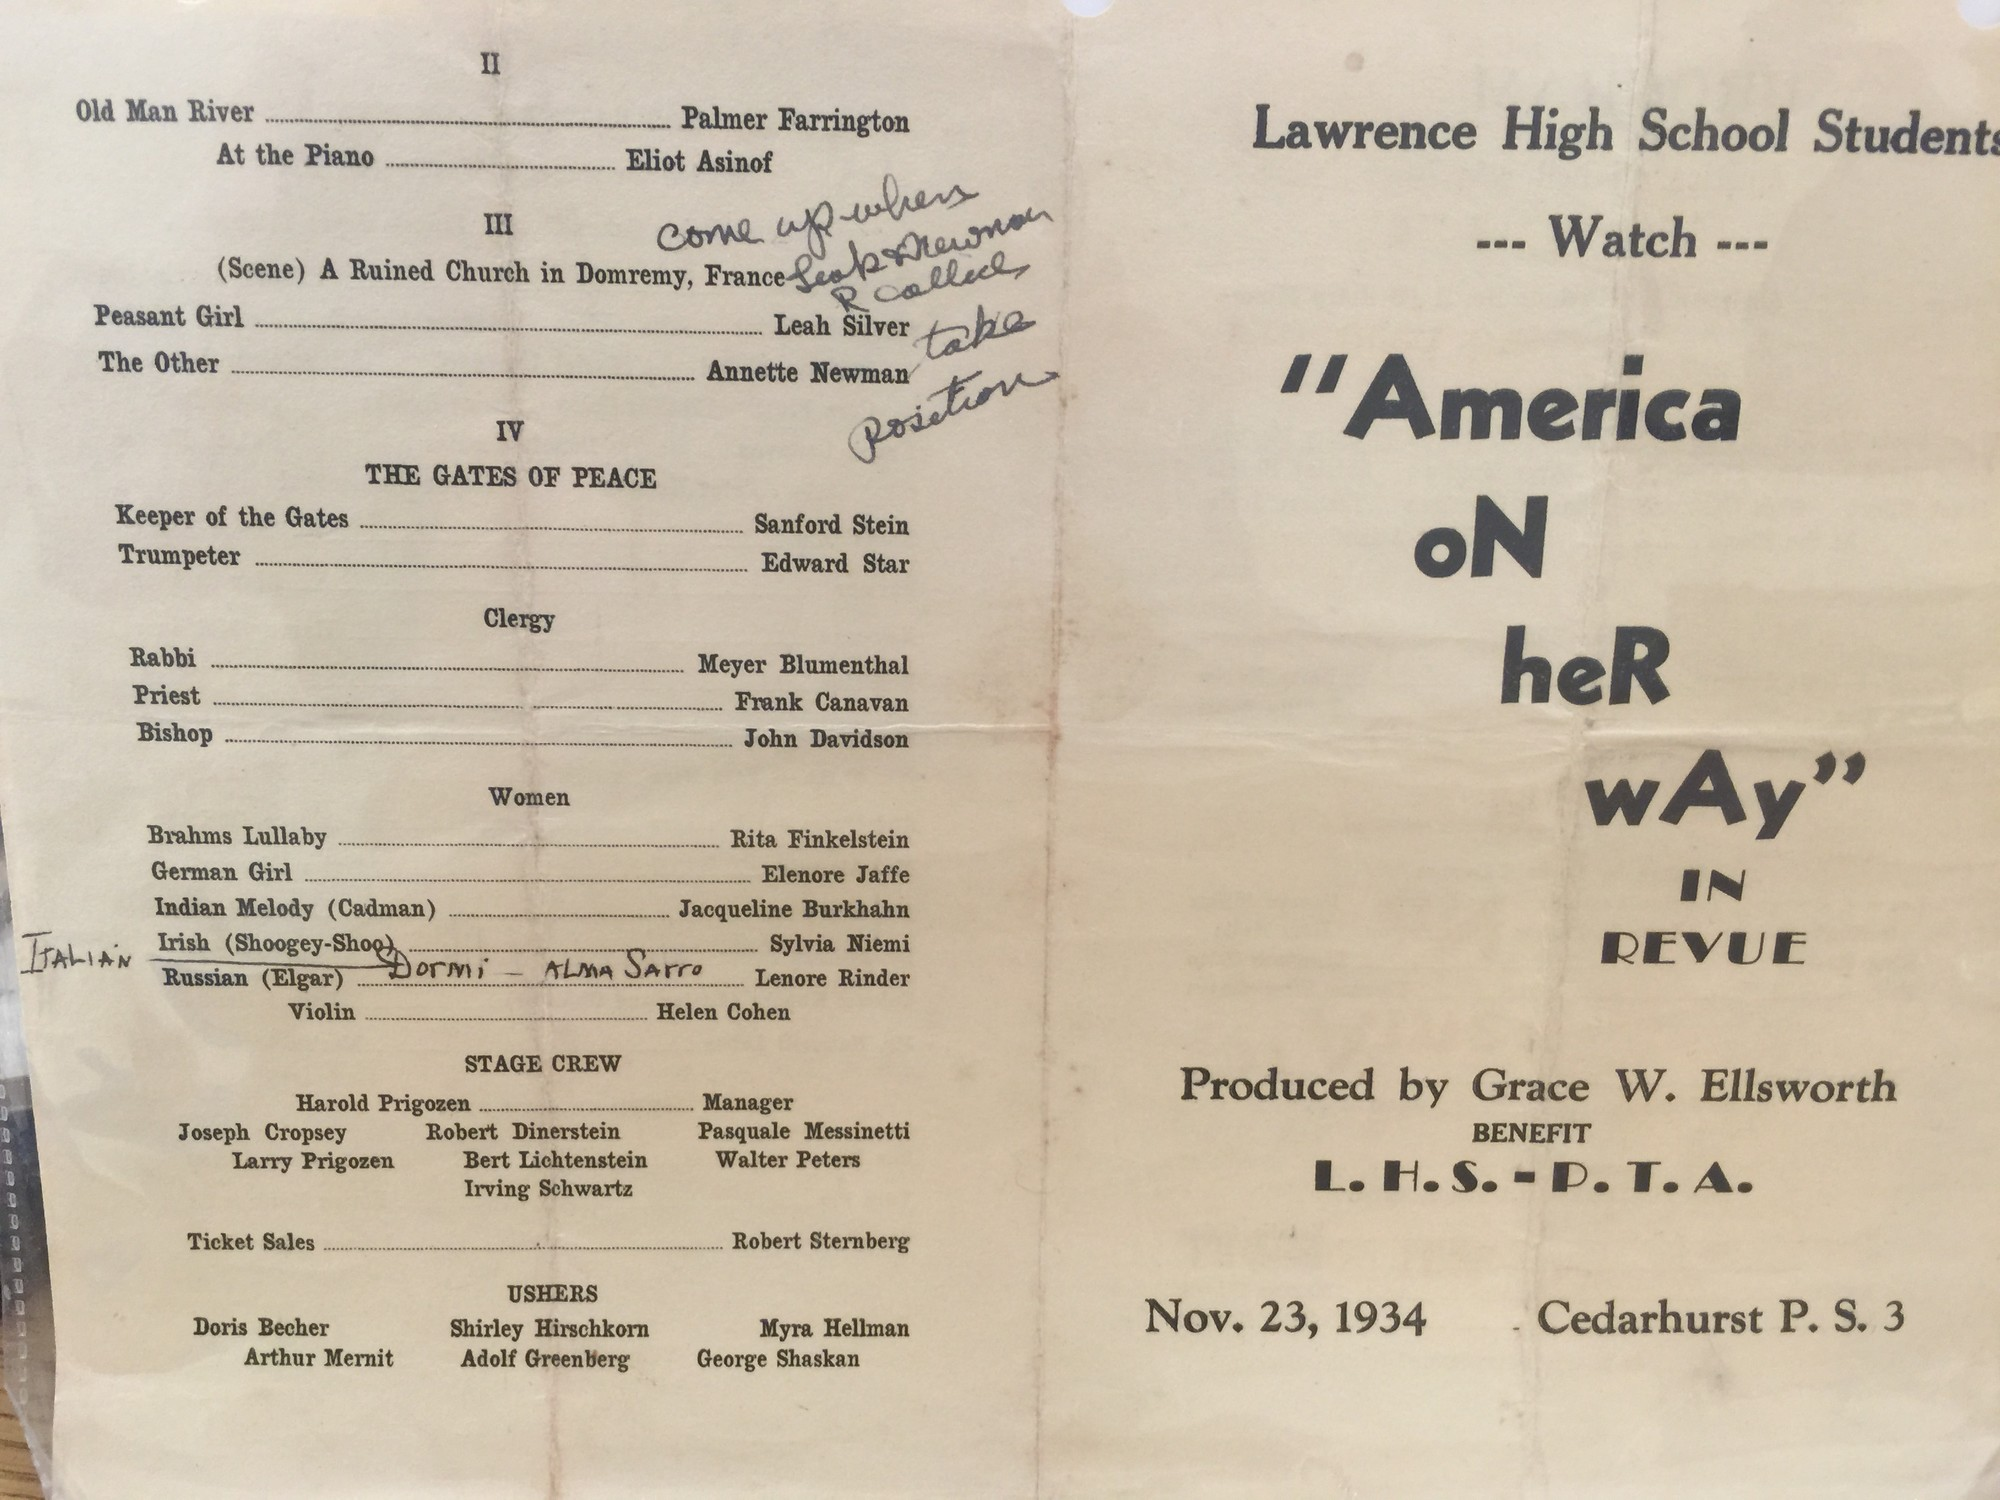 A playbill from a 1934 Lawrence High School show is part of the memorabilia the district will exhibit during the 125th anniversary celebration.